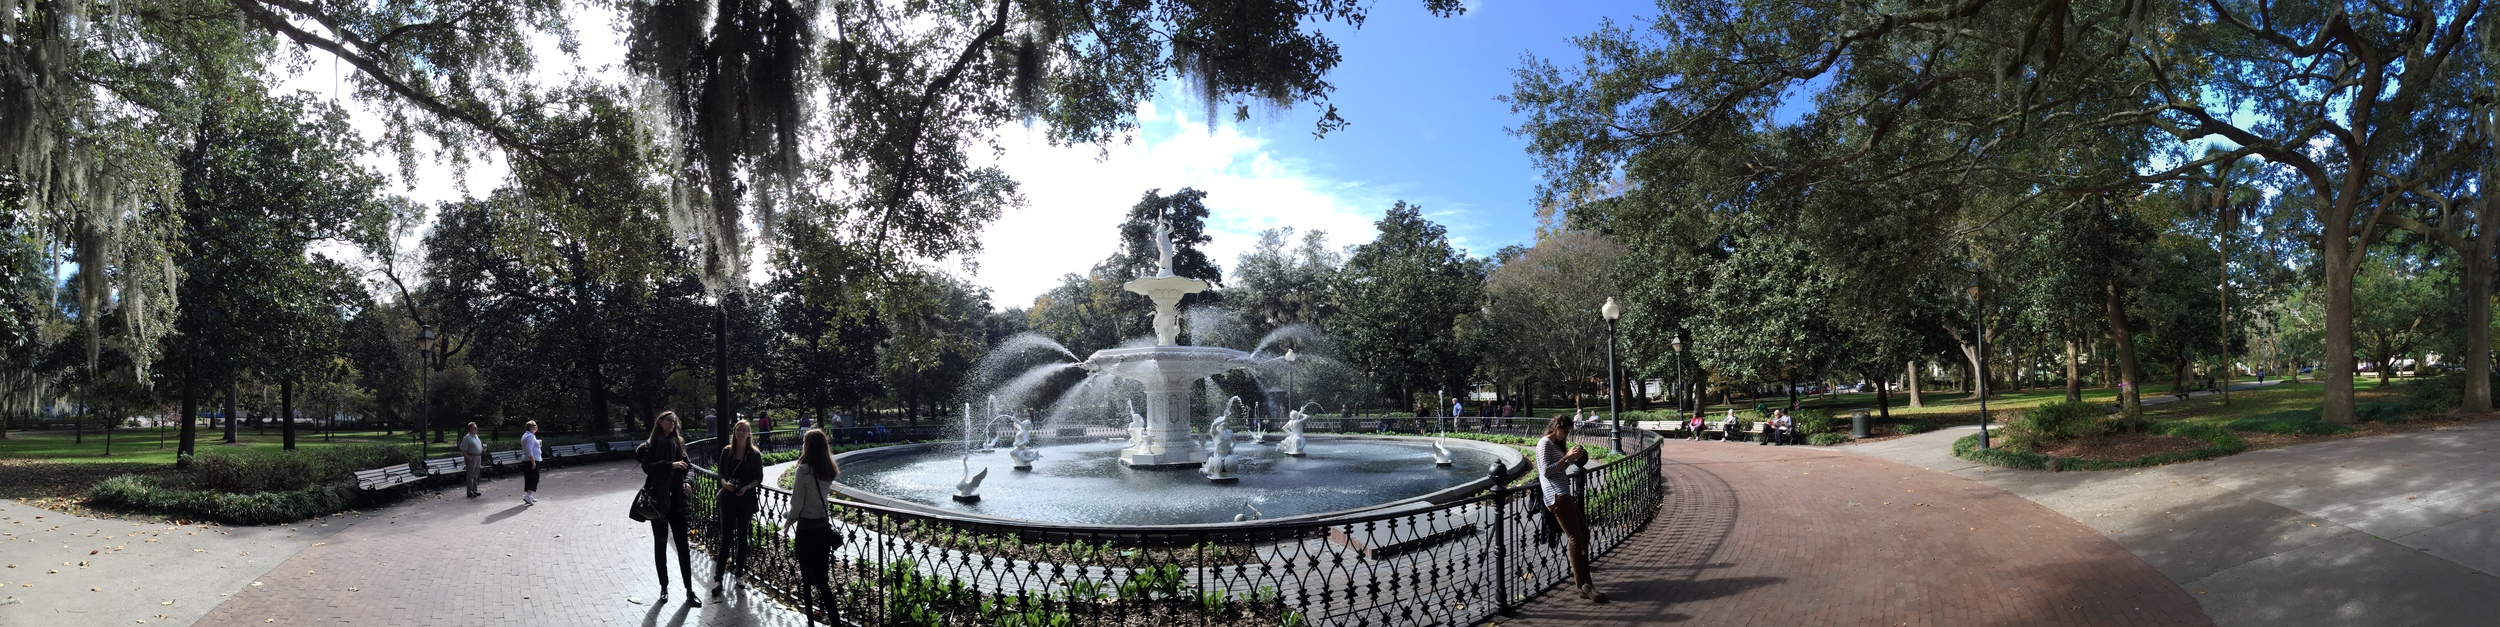 A view of the Fountain in Forsyth Park. The fountain was built in 1859 and was first seen at the World's Fair in England in 1851. There are only 4 of them in the world and this is the only one that remains intact. It represents no monumental significance, it simply exists for its own beauty. It has become the icon of Savannah.